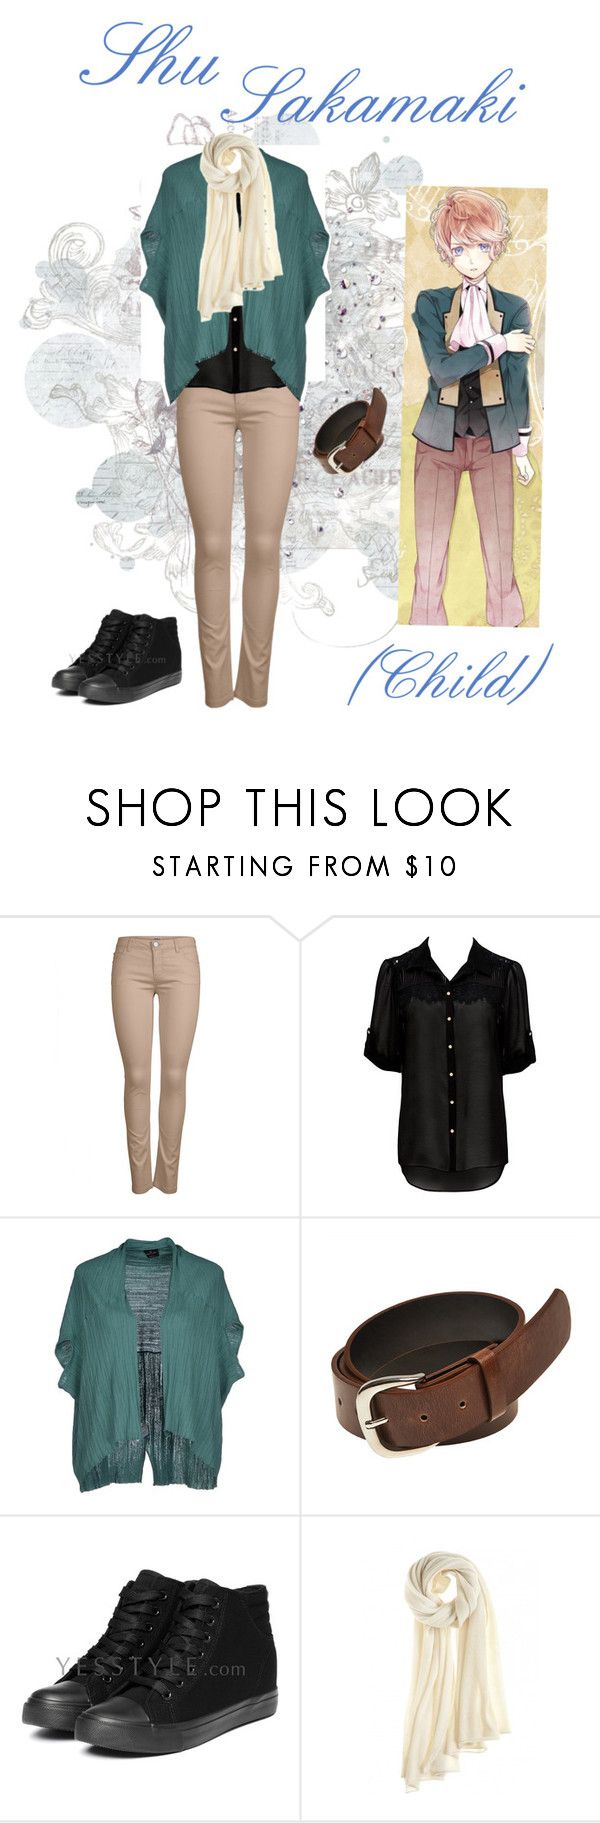 """Sakamaki Shu Casual Cosplay (Child), Diabolik Lovers"" by psychometorzi ❤ liked on Polyvore featuring ONLY, Forever New, Gotha, Wet Seal, yeswalker and Calypso St. Barth"